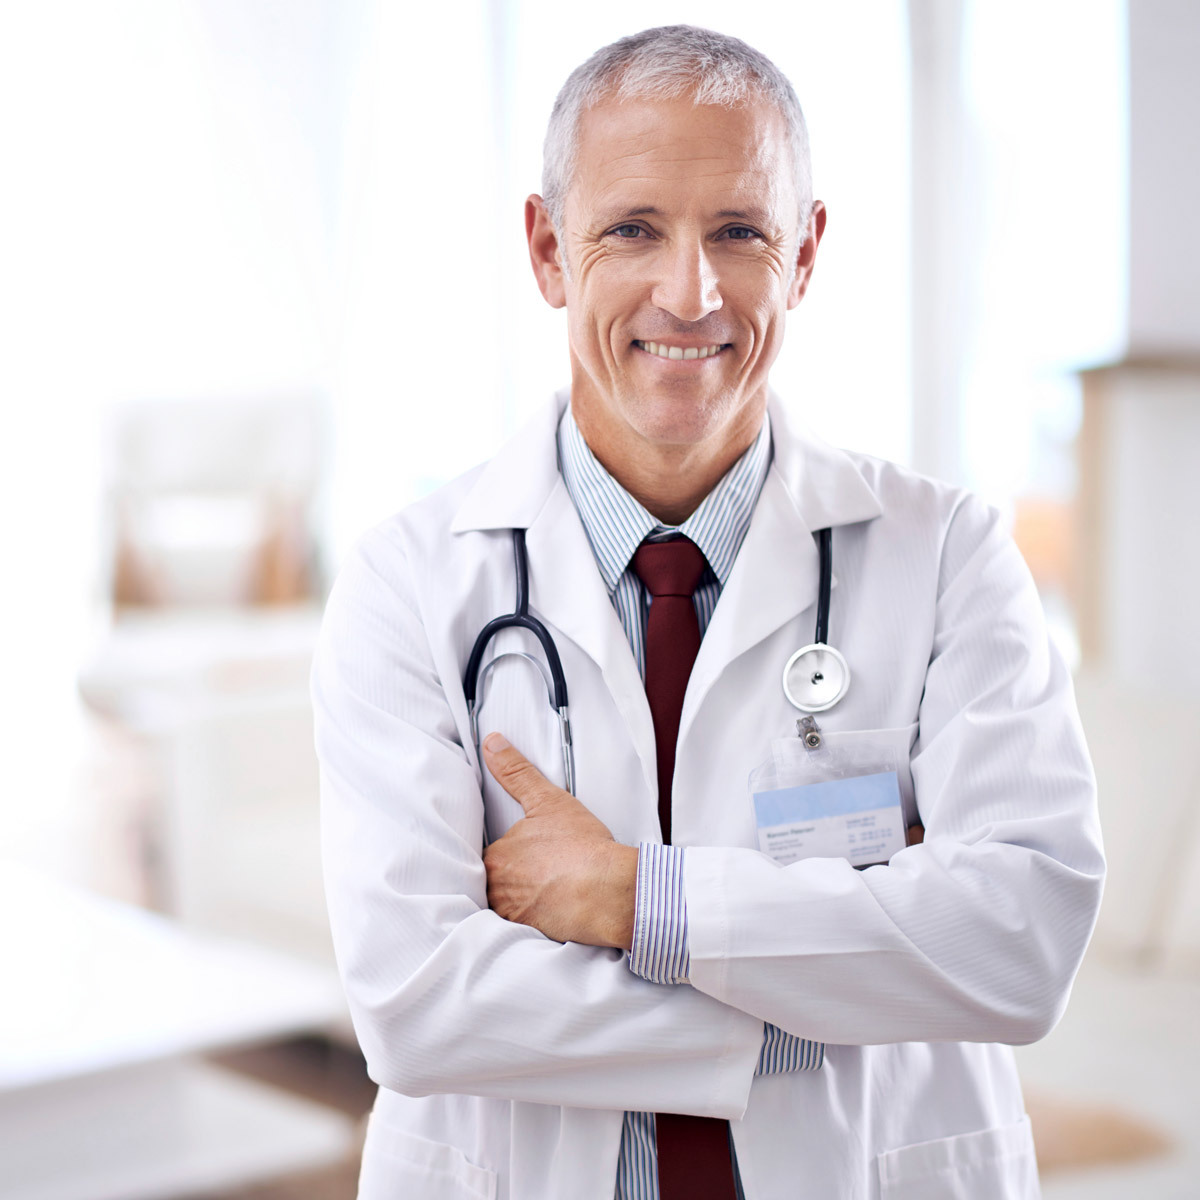 Mciver Clinic Urologists Surgeons Board Certified - oukas info